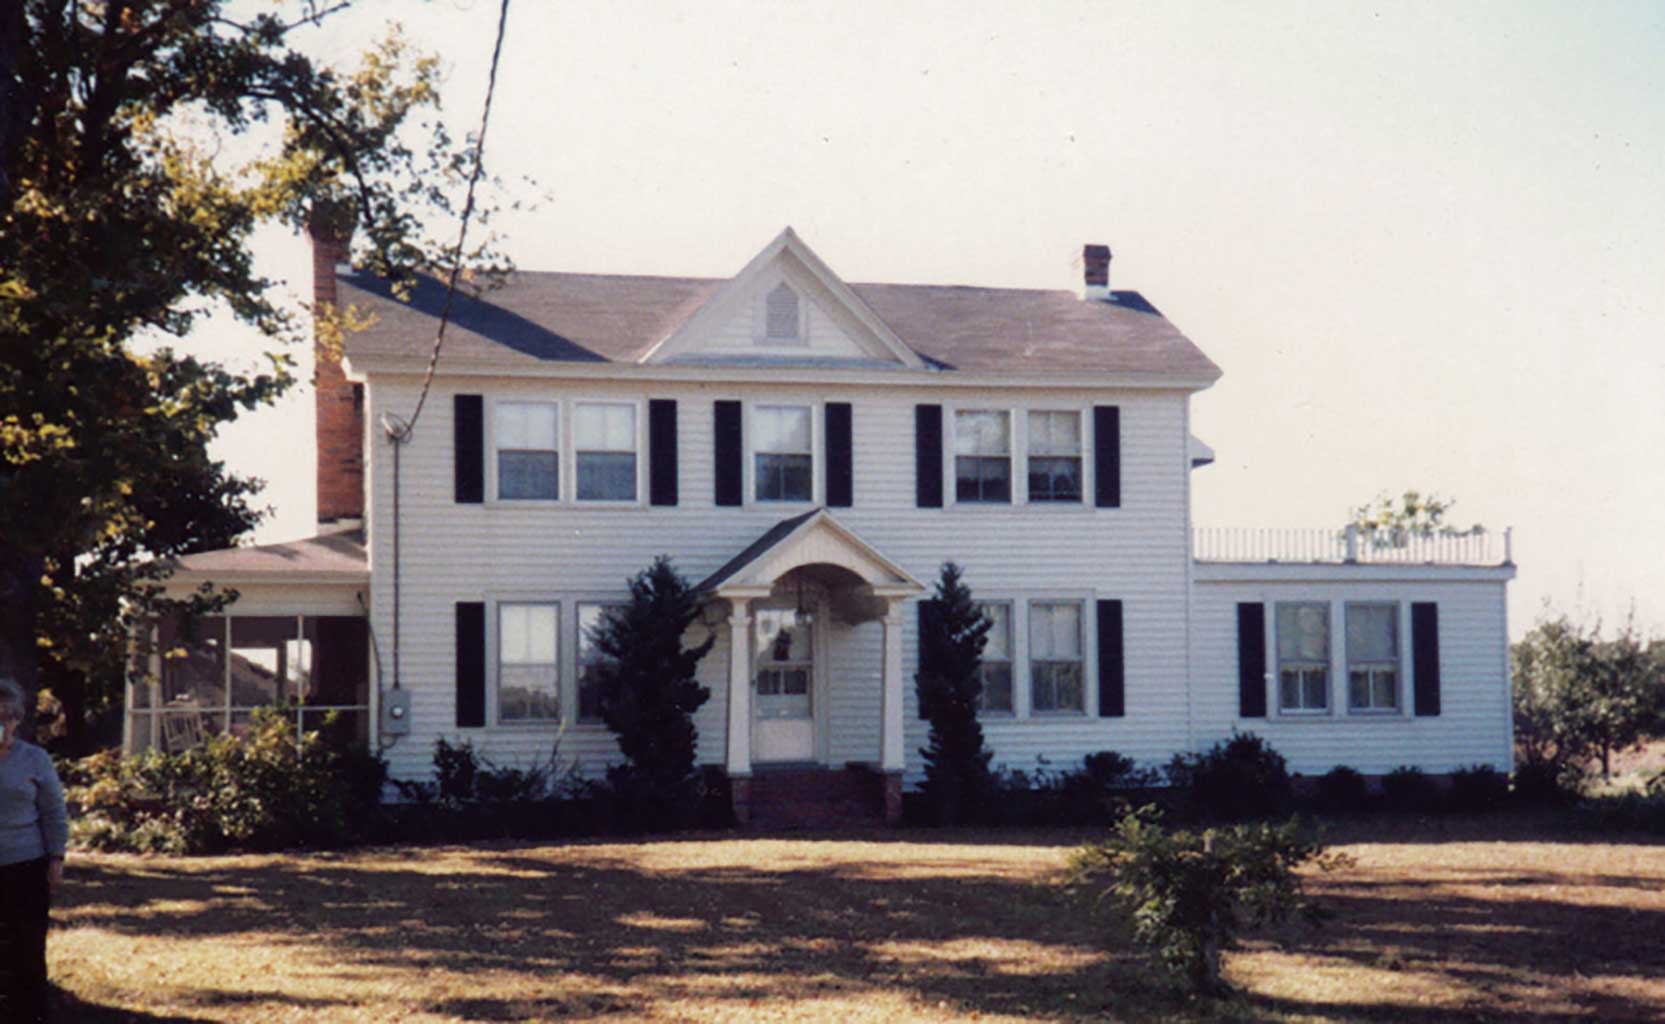 Horne home at Longview. 1990s